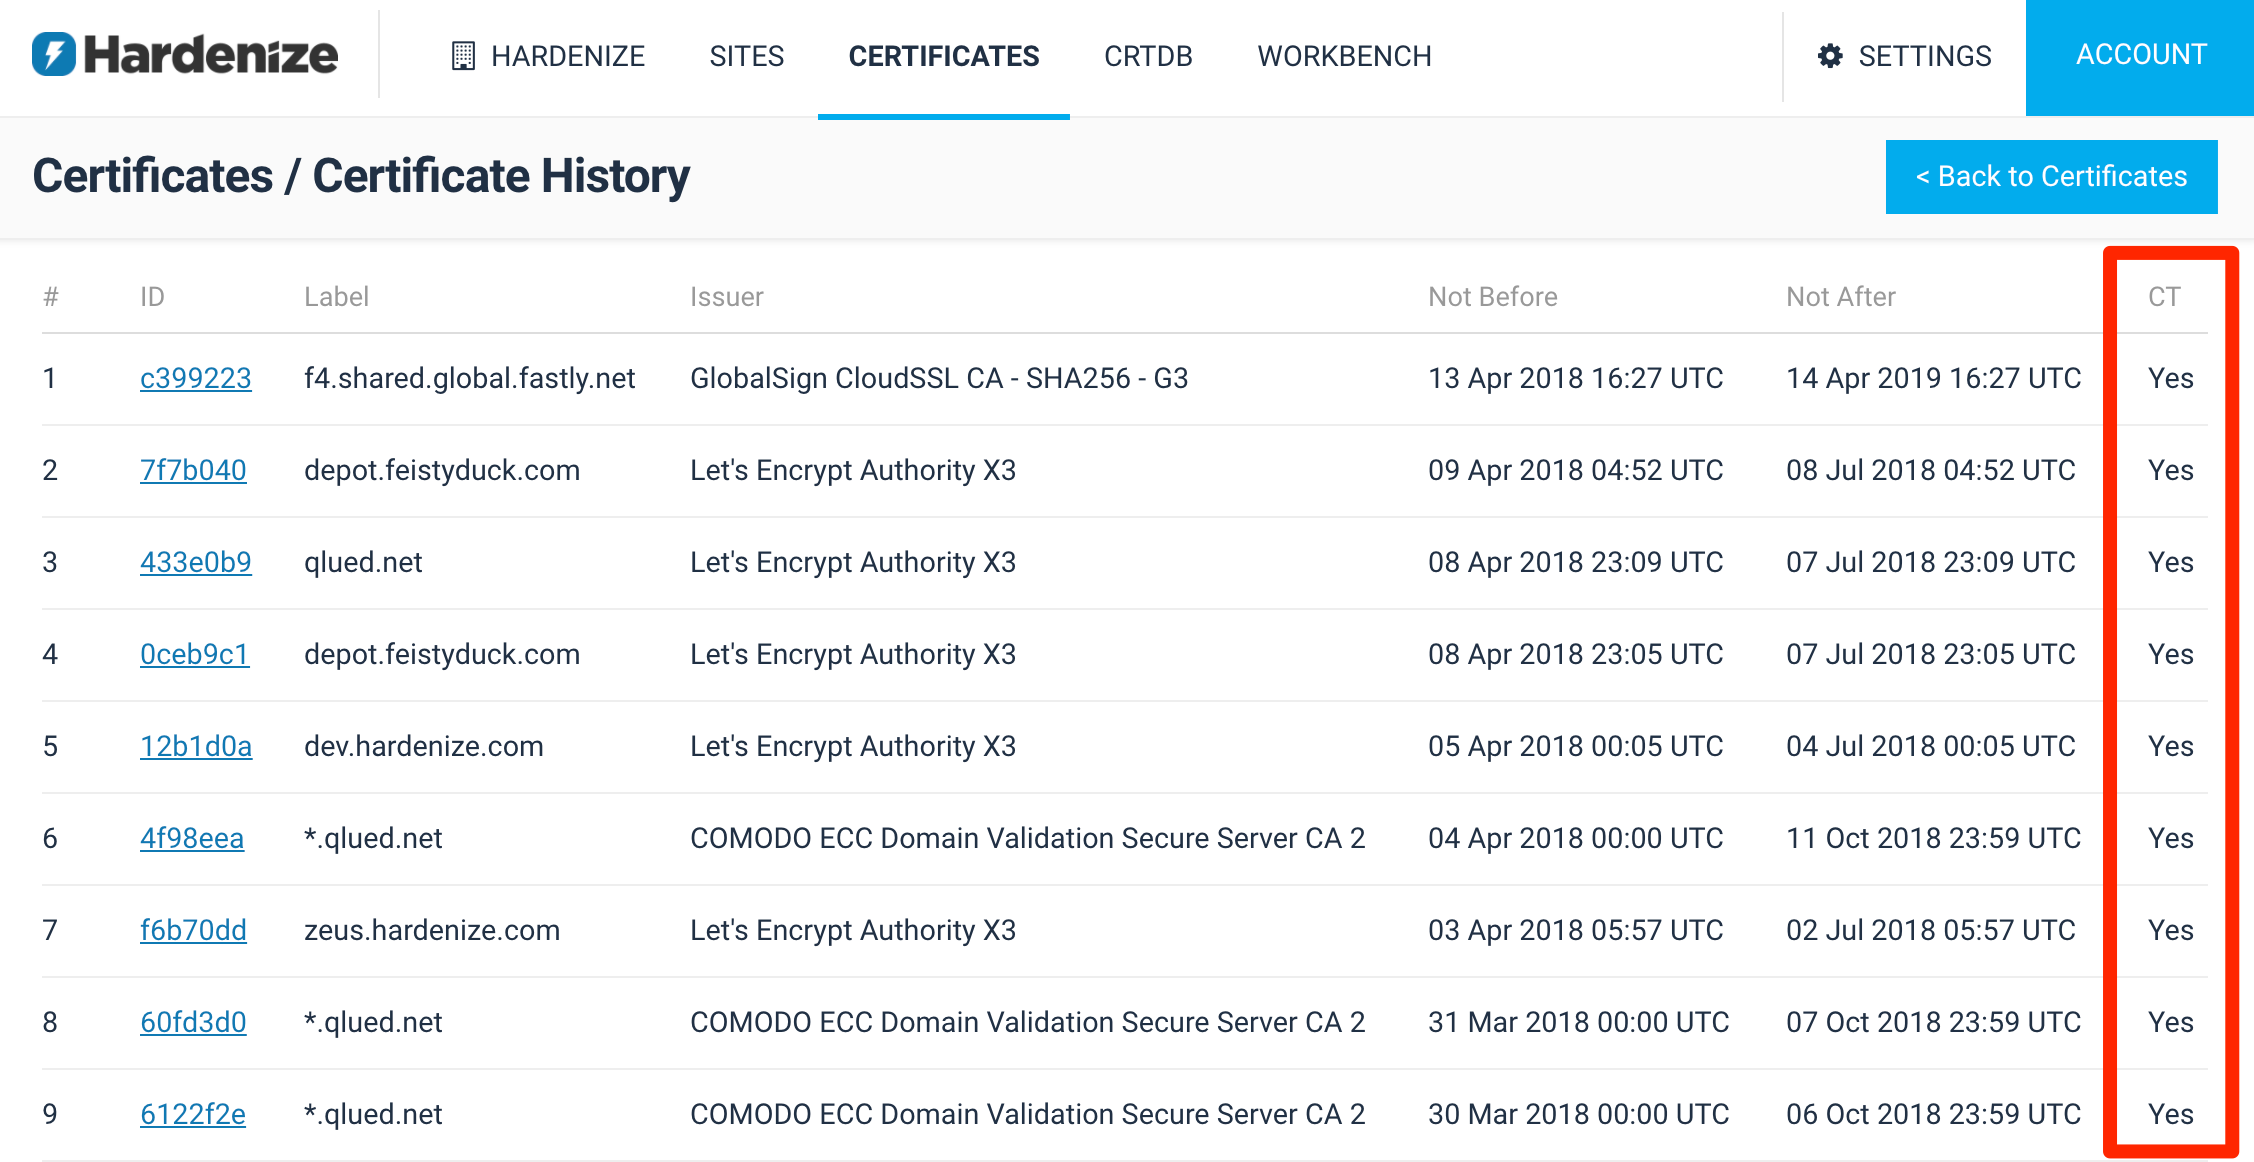 Certificate Transparency Compliance Monitoring | Hardenize Blog